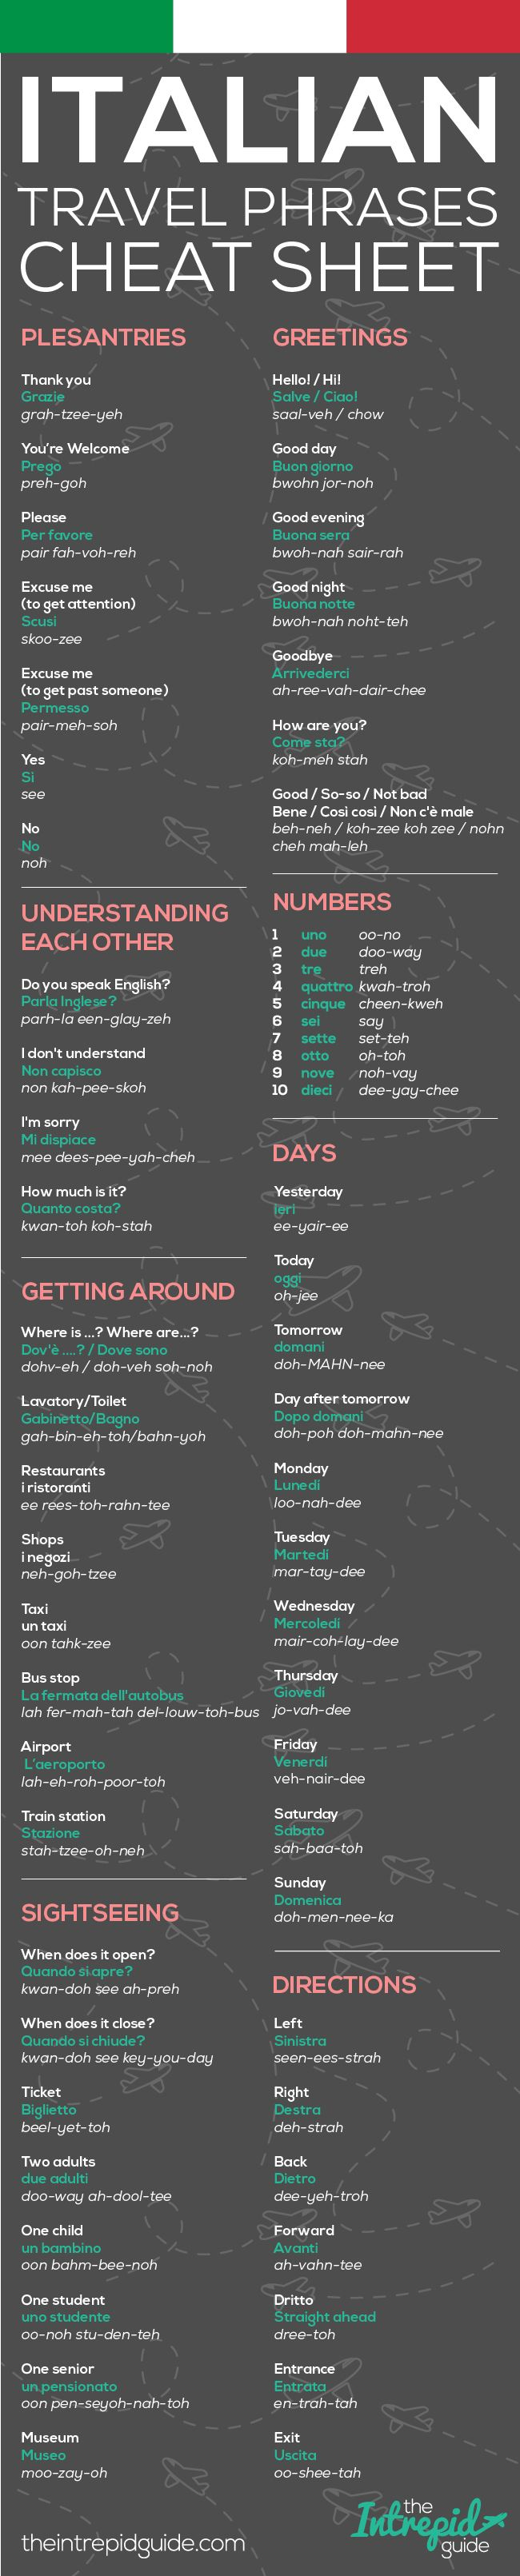 English In Italian: Italian Travel Phrases Cheat Sheet